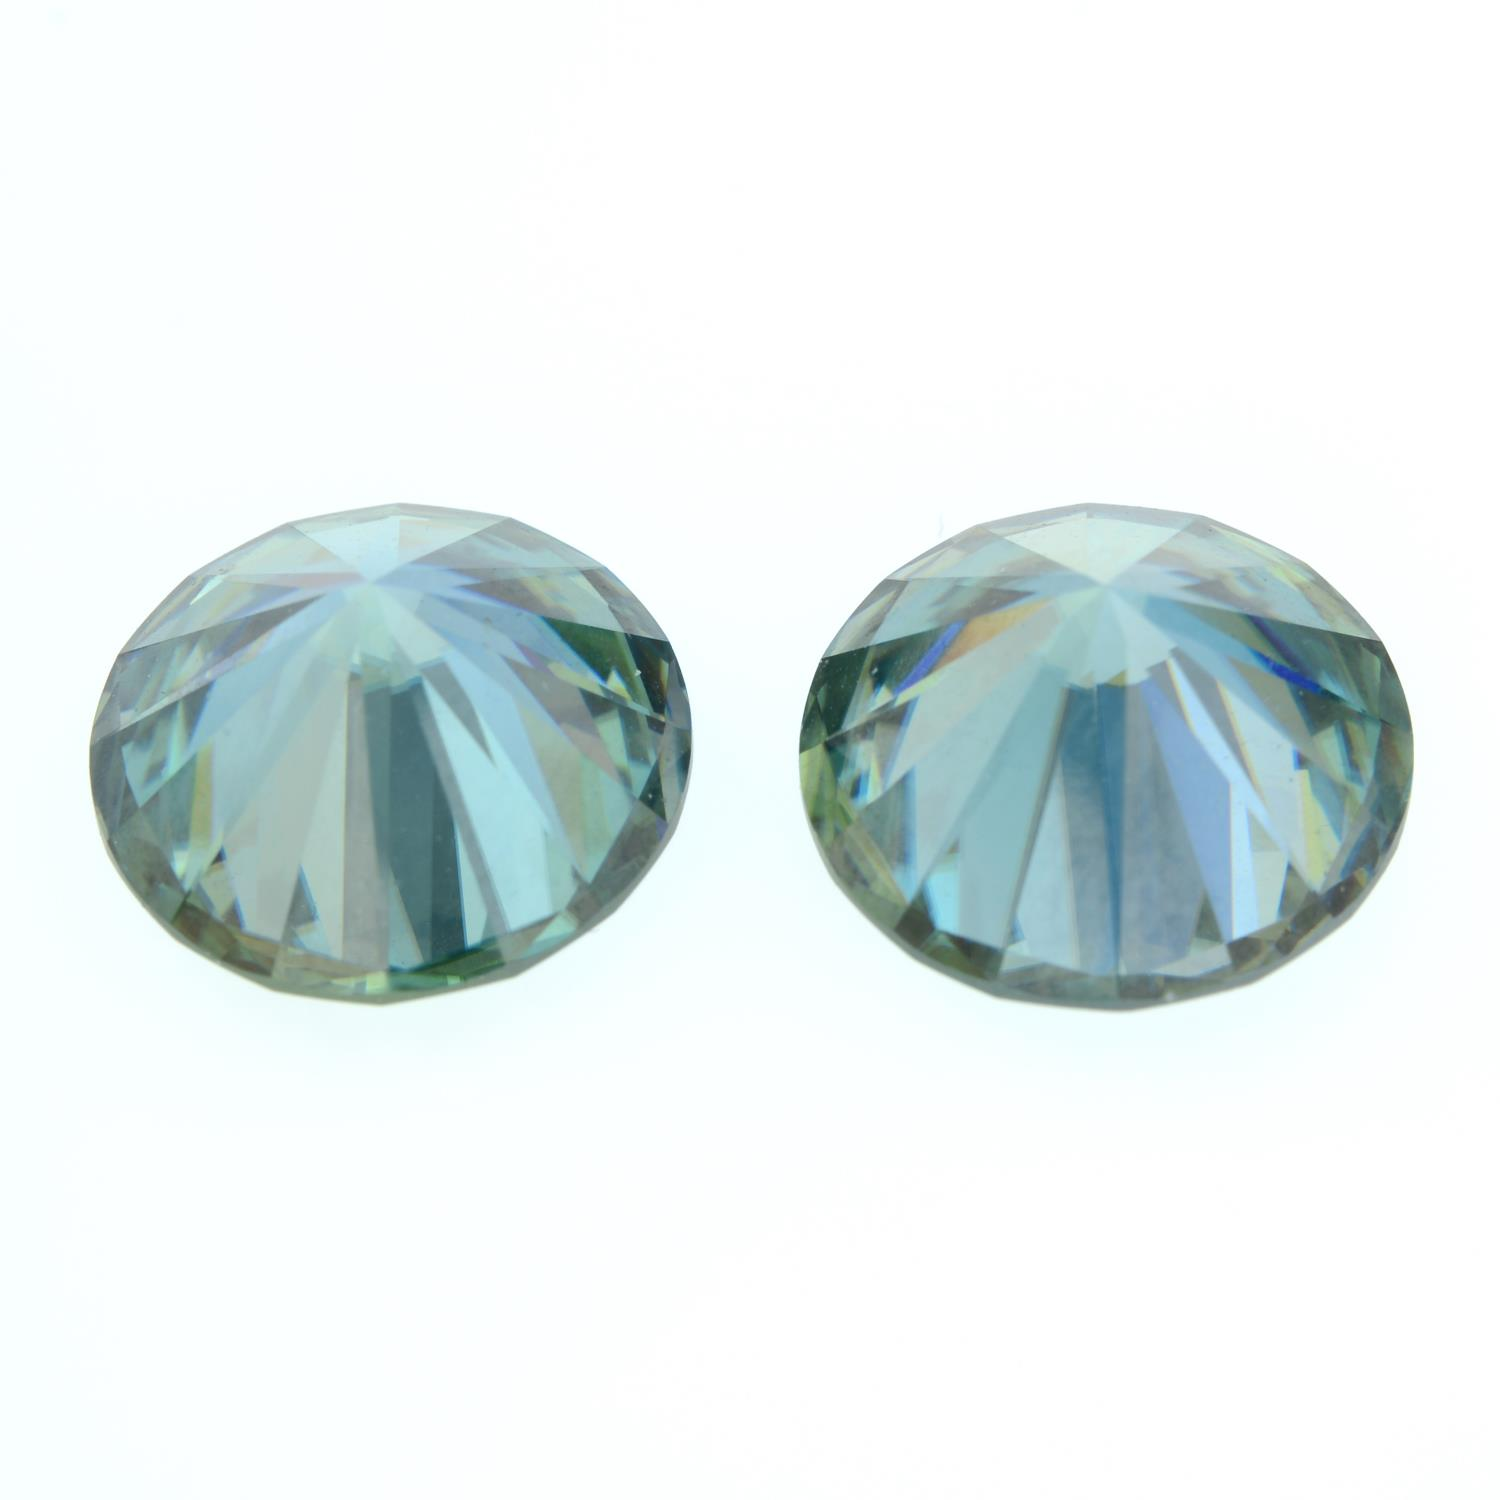 A pair of circular-shape green synthetic moissanite, weighing 13.72cts total. - Image 2 of 2